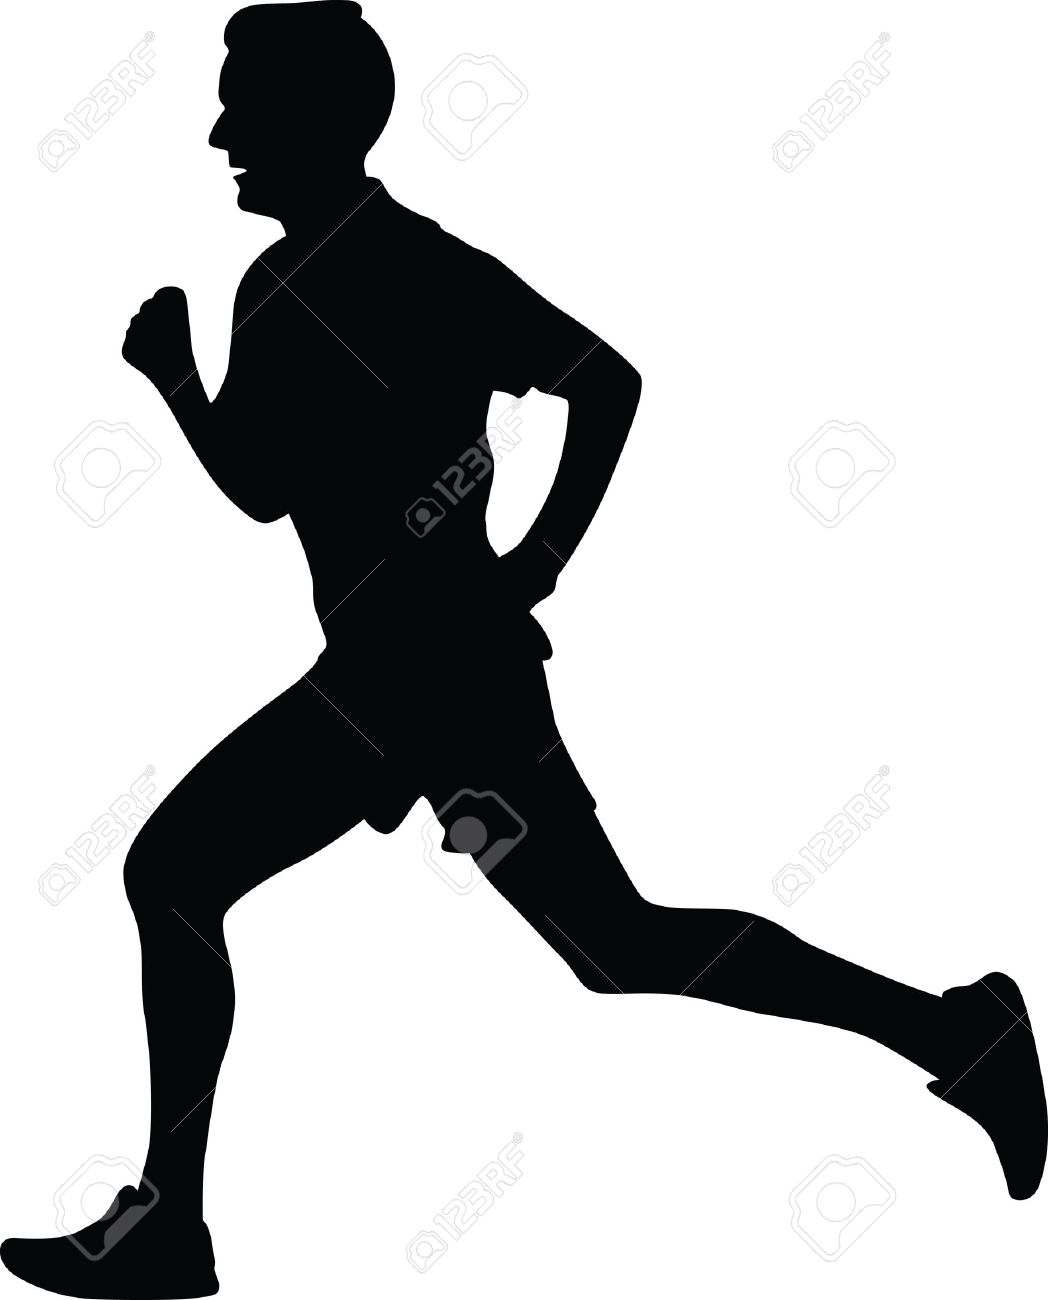 runner silhouette vector royalty free cliparts vectors and stock rh 123rf com